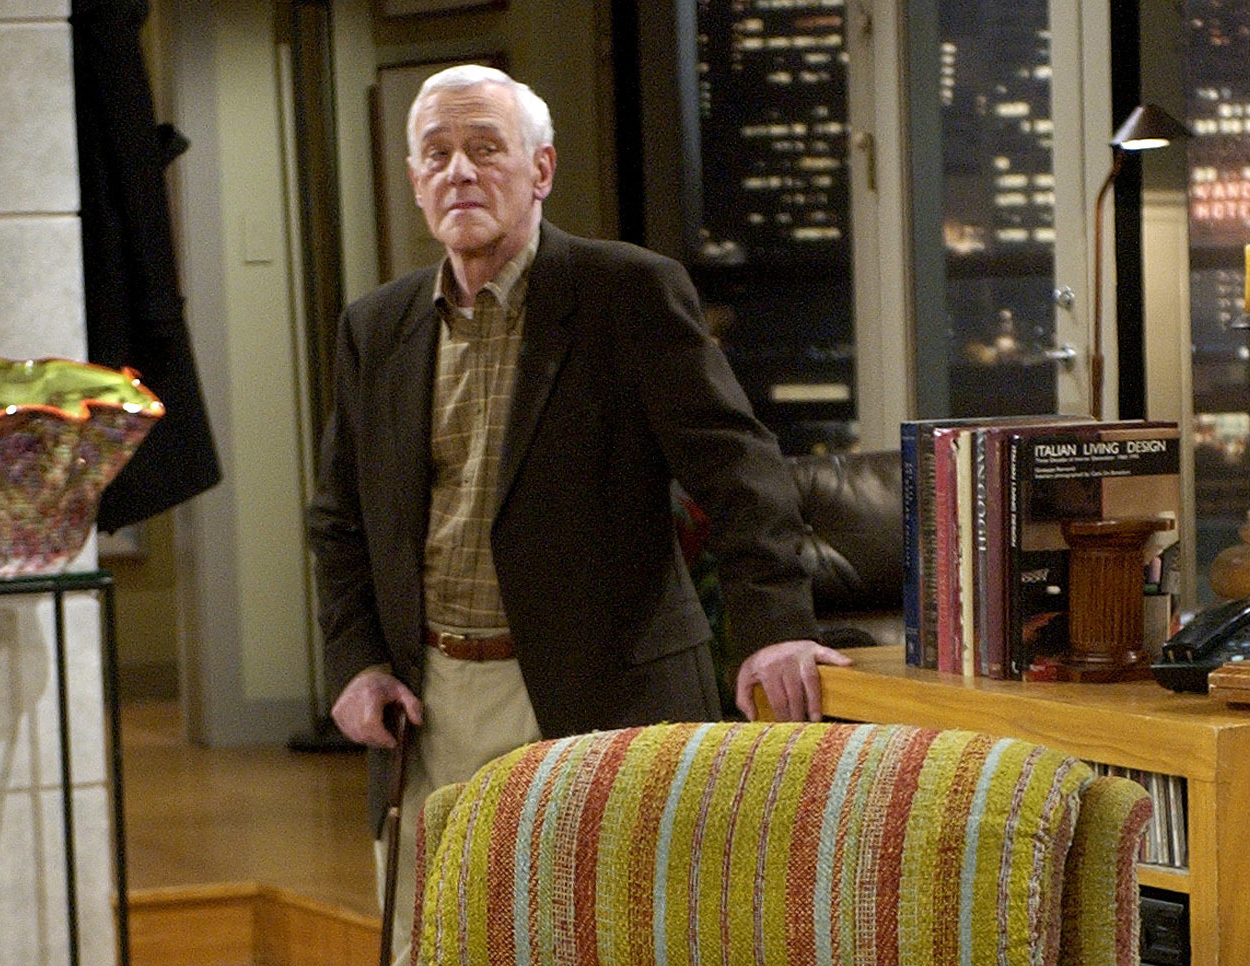 John Mahoney, actor and Frasier star, dies aged 77